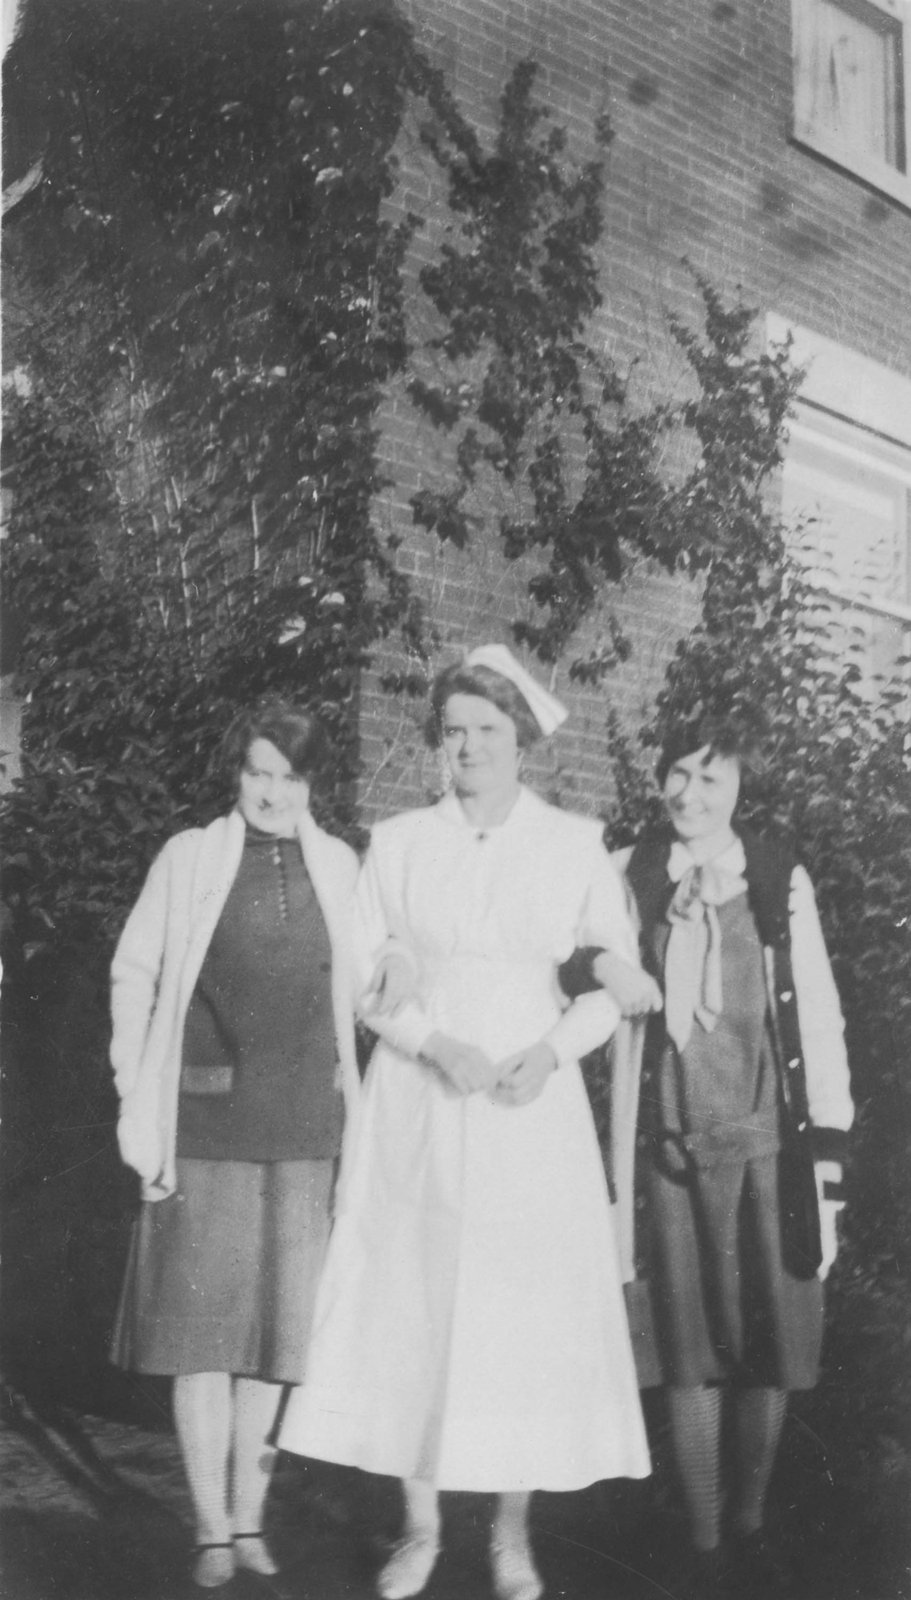 Night Supervisor with Students, c. 1920